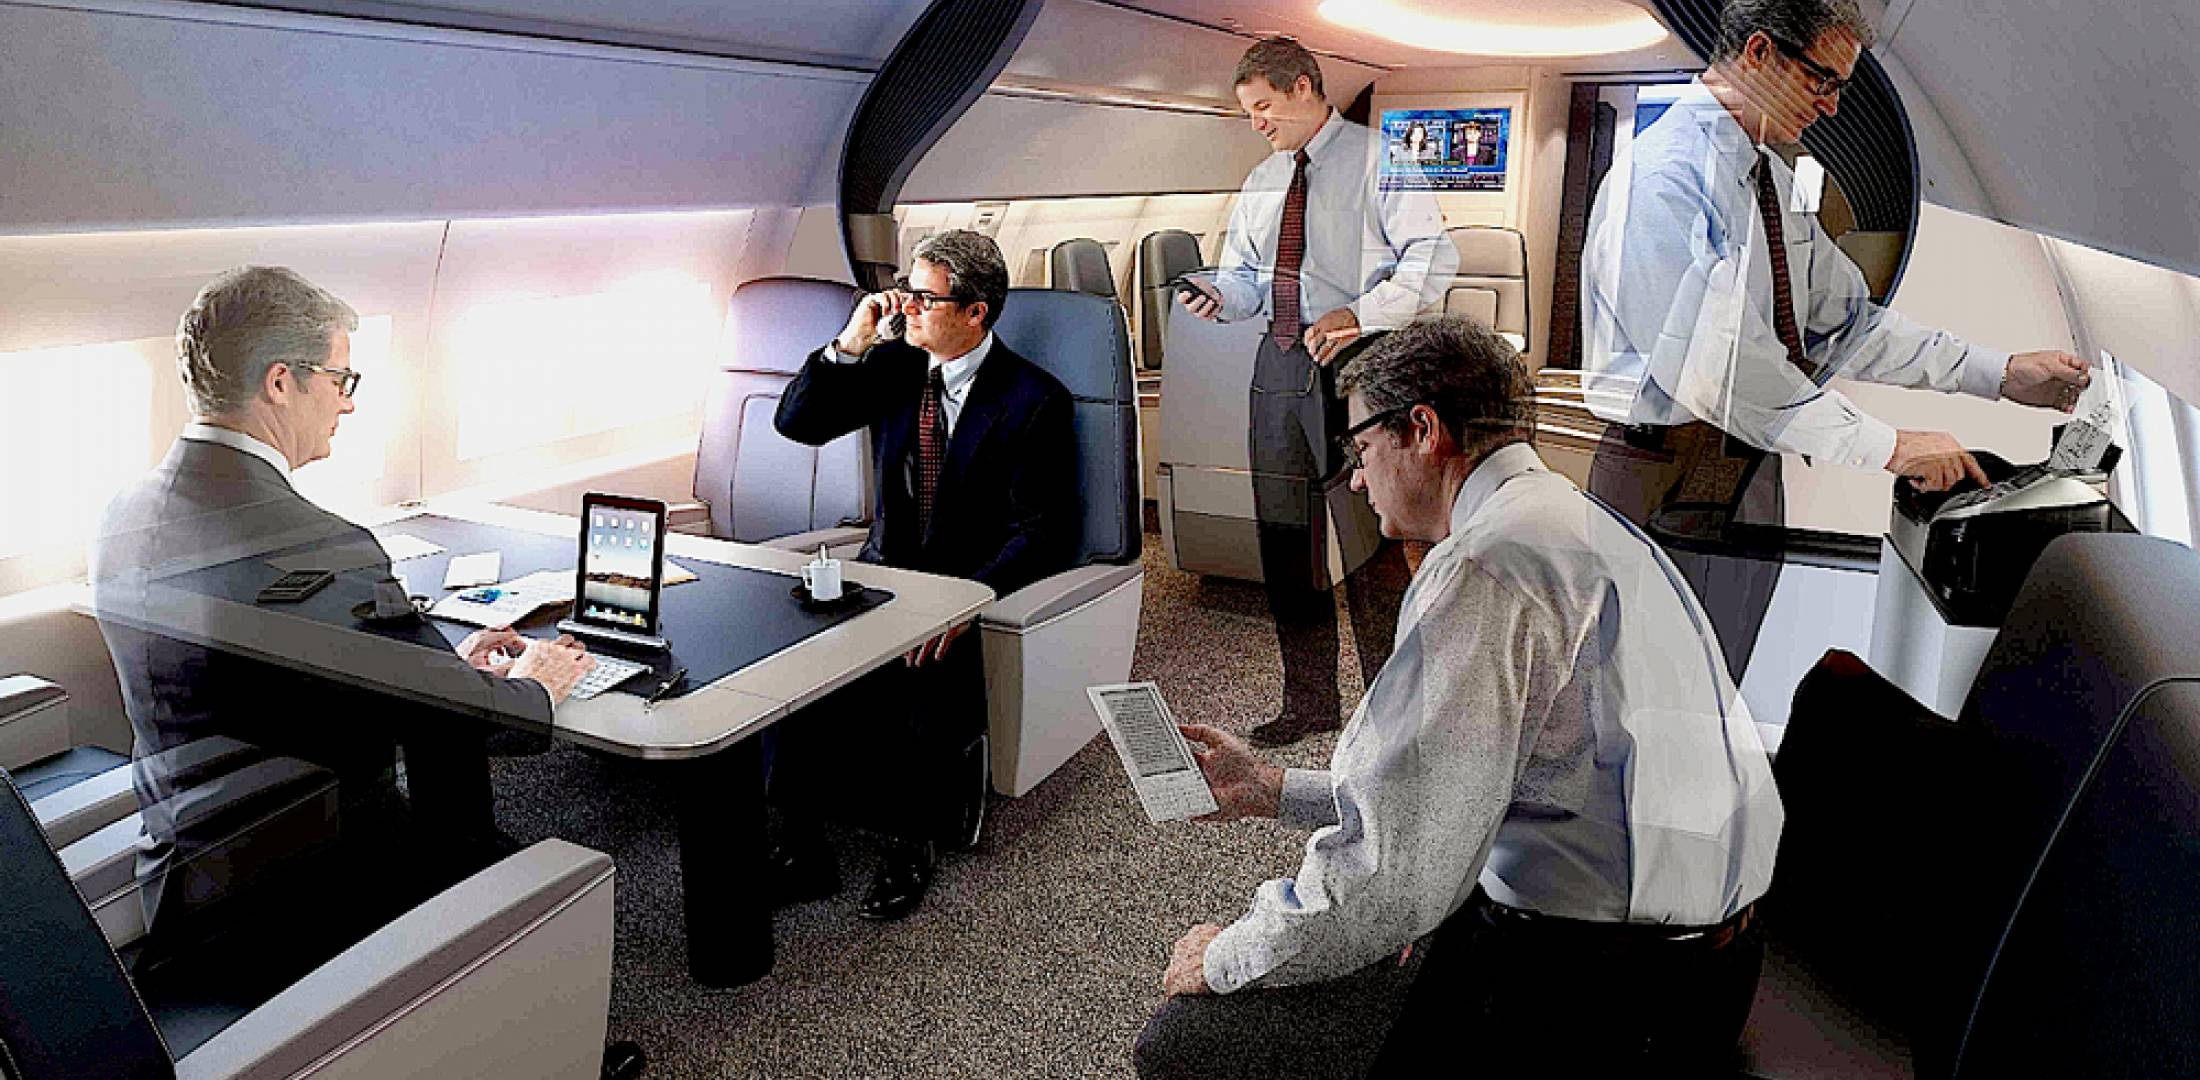 TrueNorth Avionics has begun delivering a GSM software solution that allows business aircraft passengers to get on the jet and use their GSM phone just as they would on the ground.